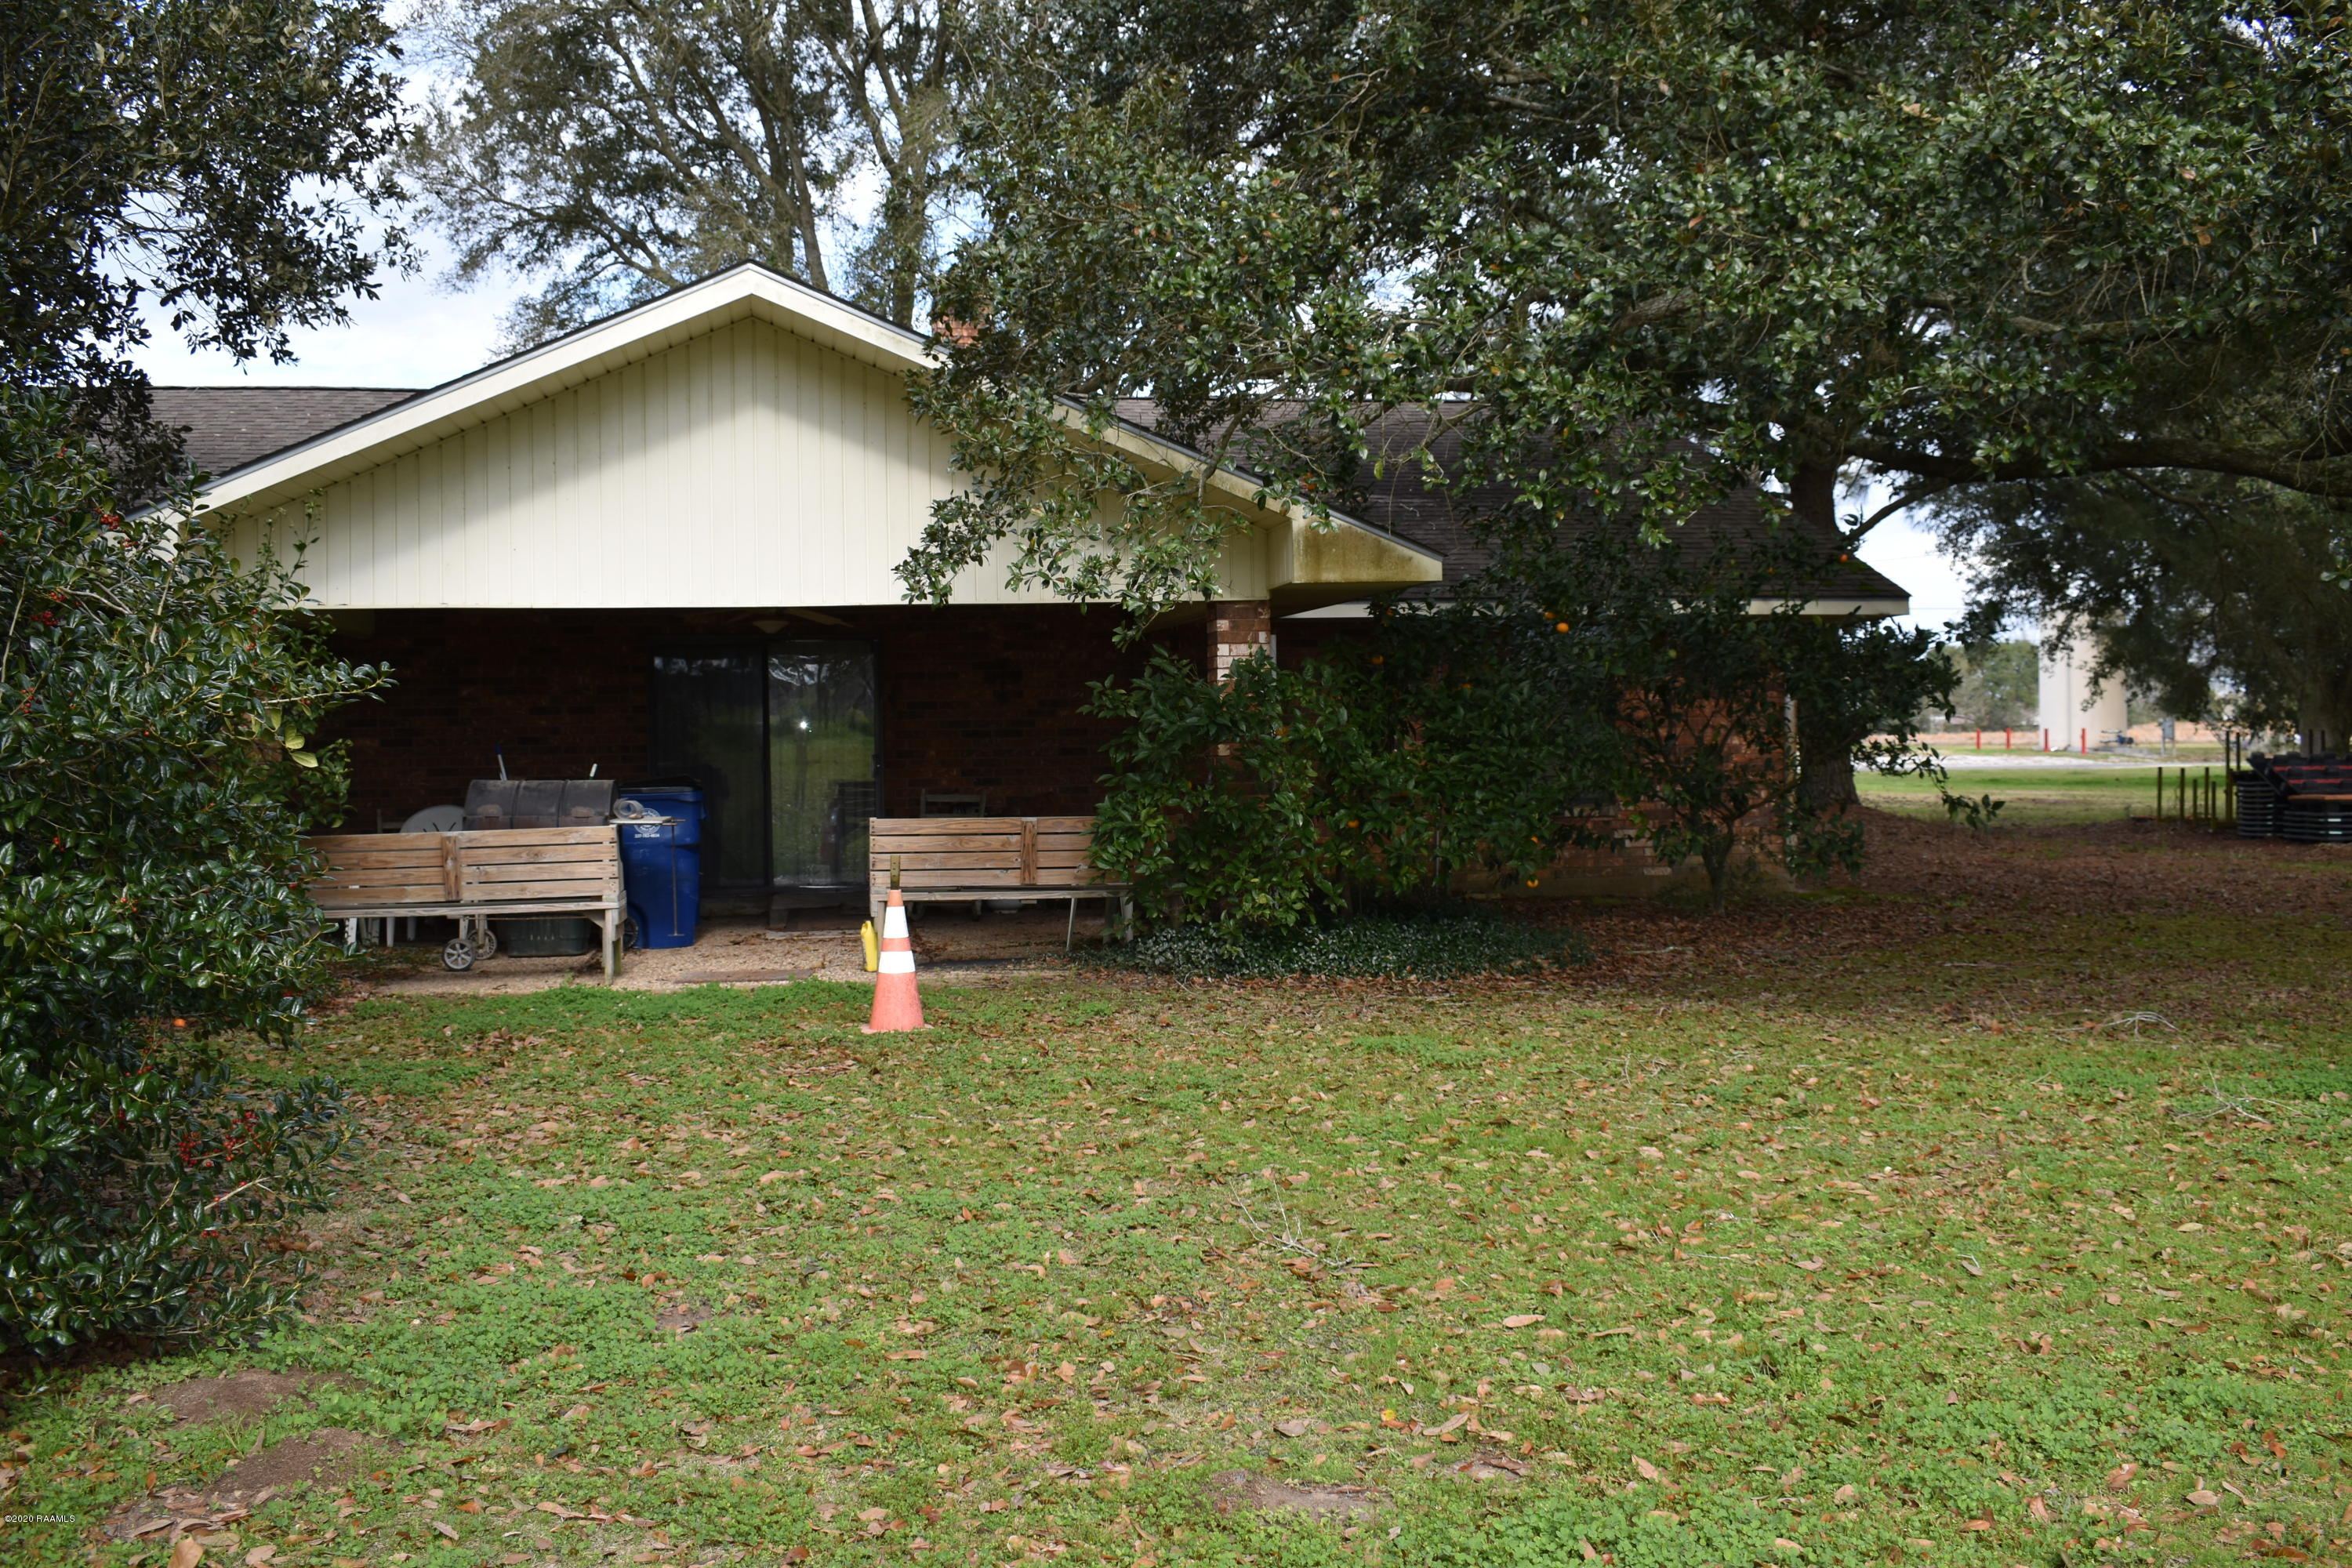 655 Saddle Drive, Eunice, LA 70535 Photo #17